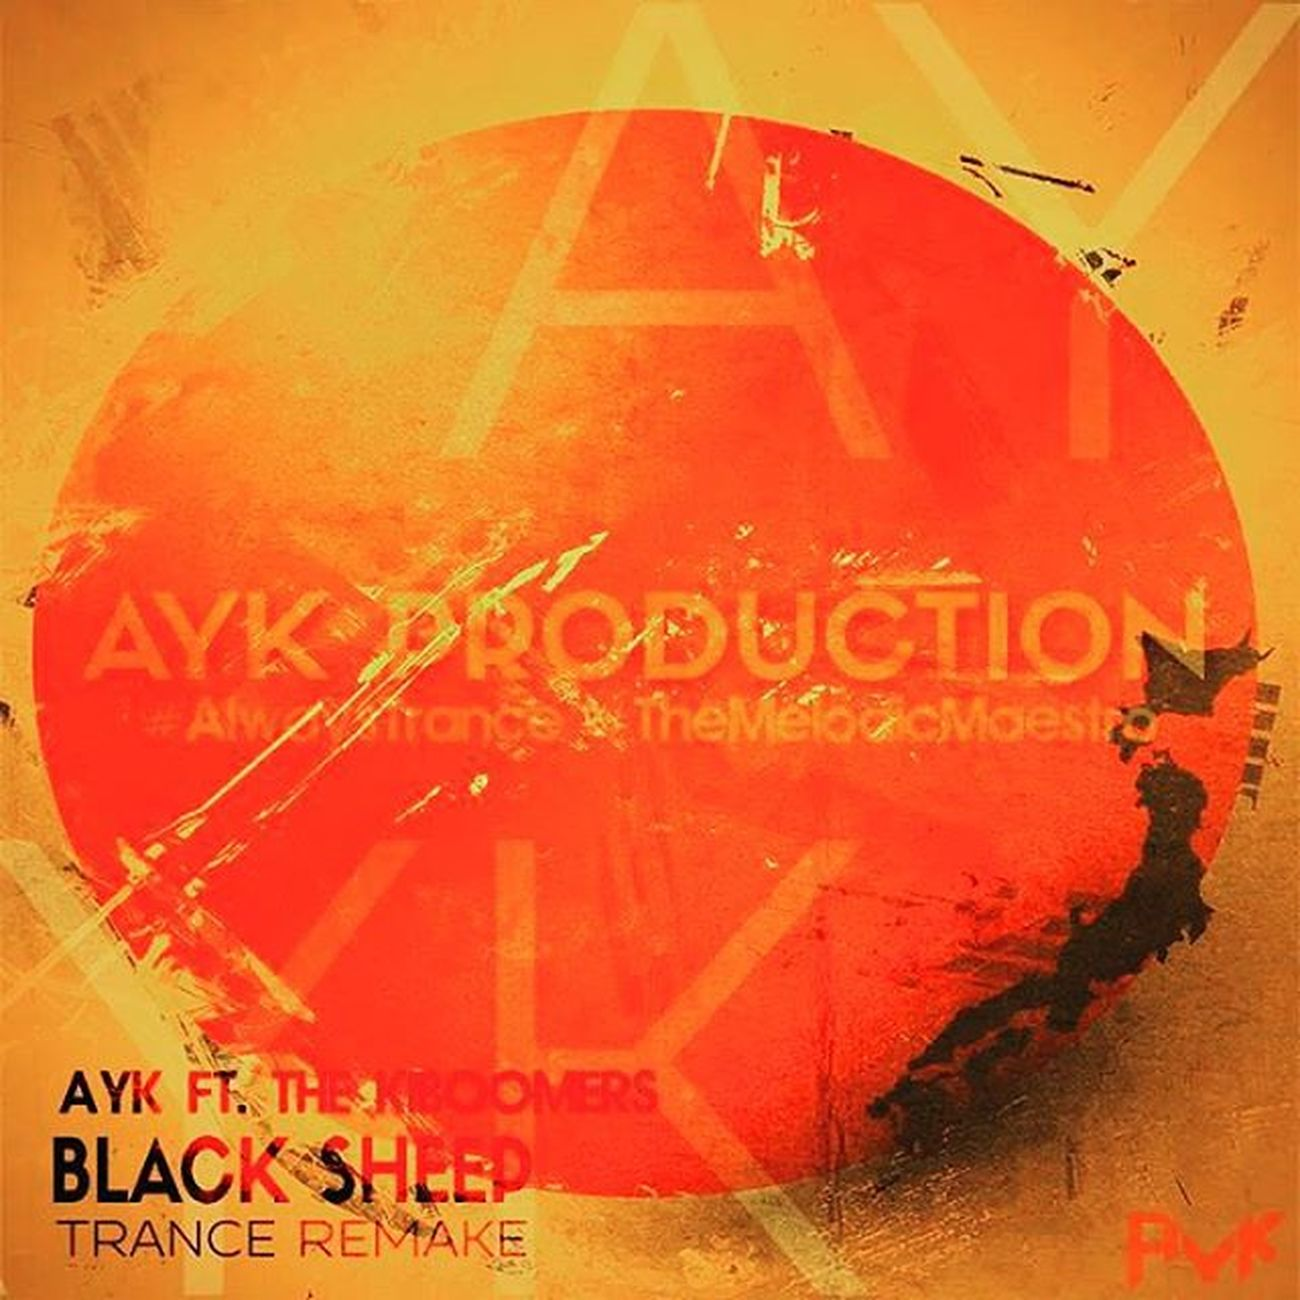 AyK in the mix, go check this out pals. Very unique attempt in the scene of trance. Trust us you will not regret. 😊 Soundcloud.com/djaykofficial 🎵🎵🎵 AlwaysTrance Trancefamily Indiantrance 💗 - Team Ayk Trancefamily Blacksheep Poem Remake Music Kids Kiboomers Tranceartist Unique Beautiful Child Childhood Winters Black Naughty Baby Babyshower Love School Caring Teachers teacherlife 😍😍😍